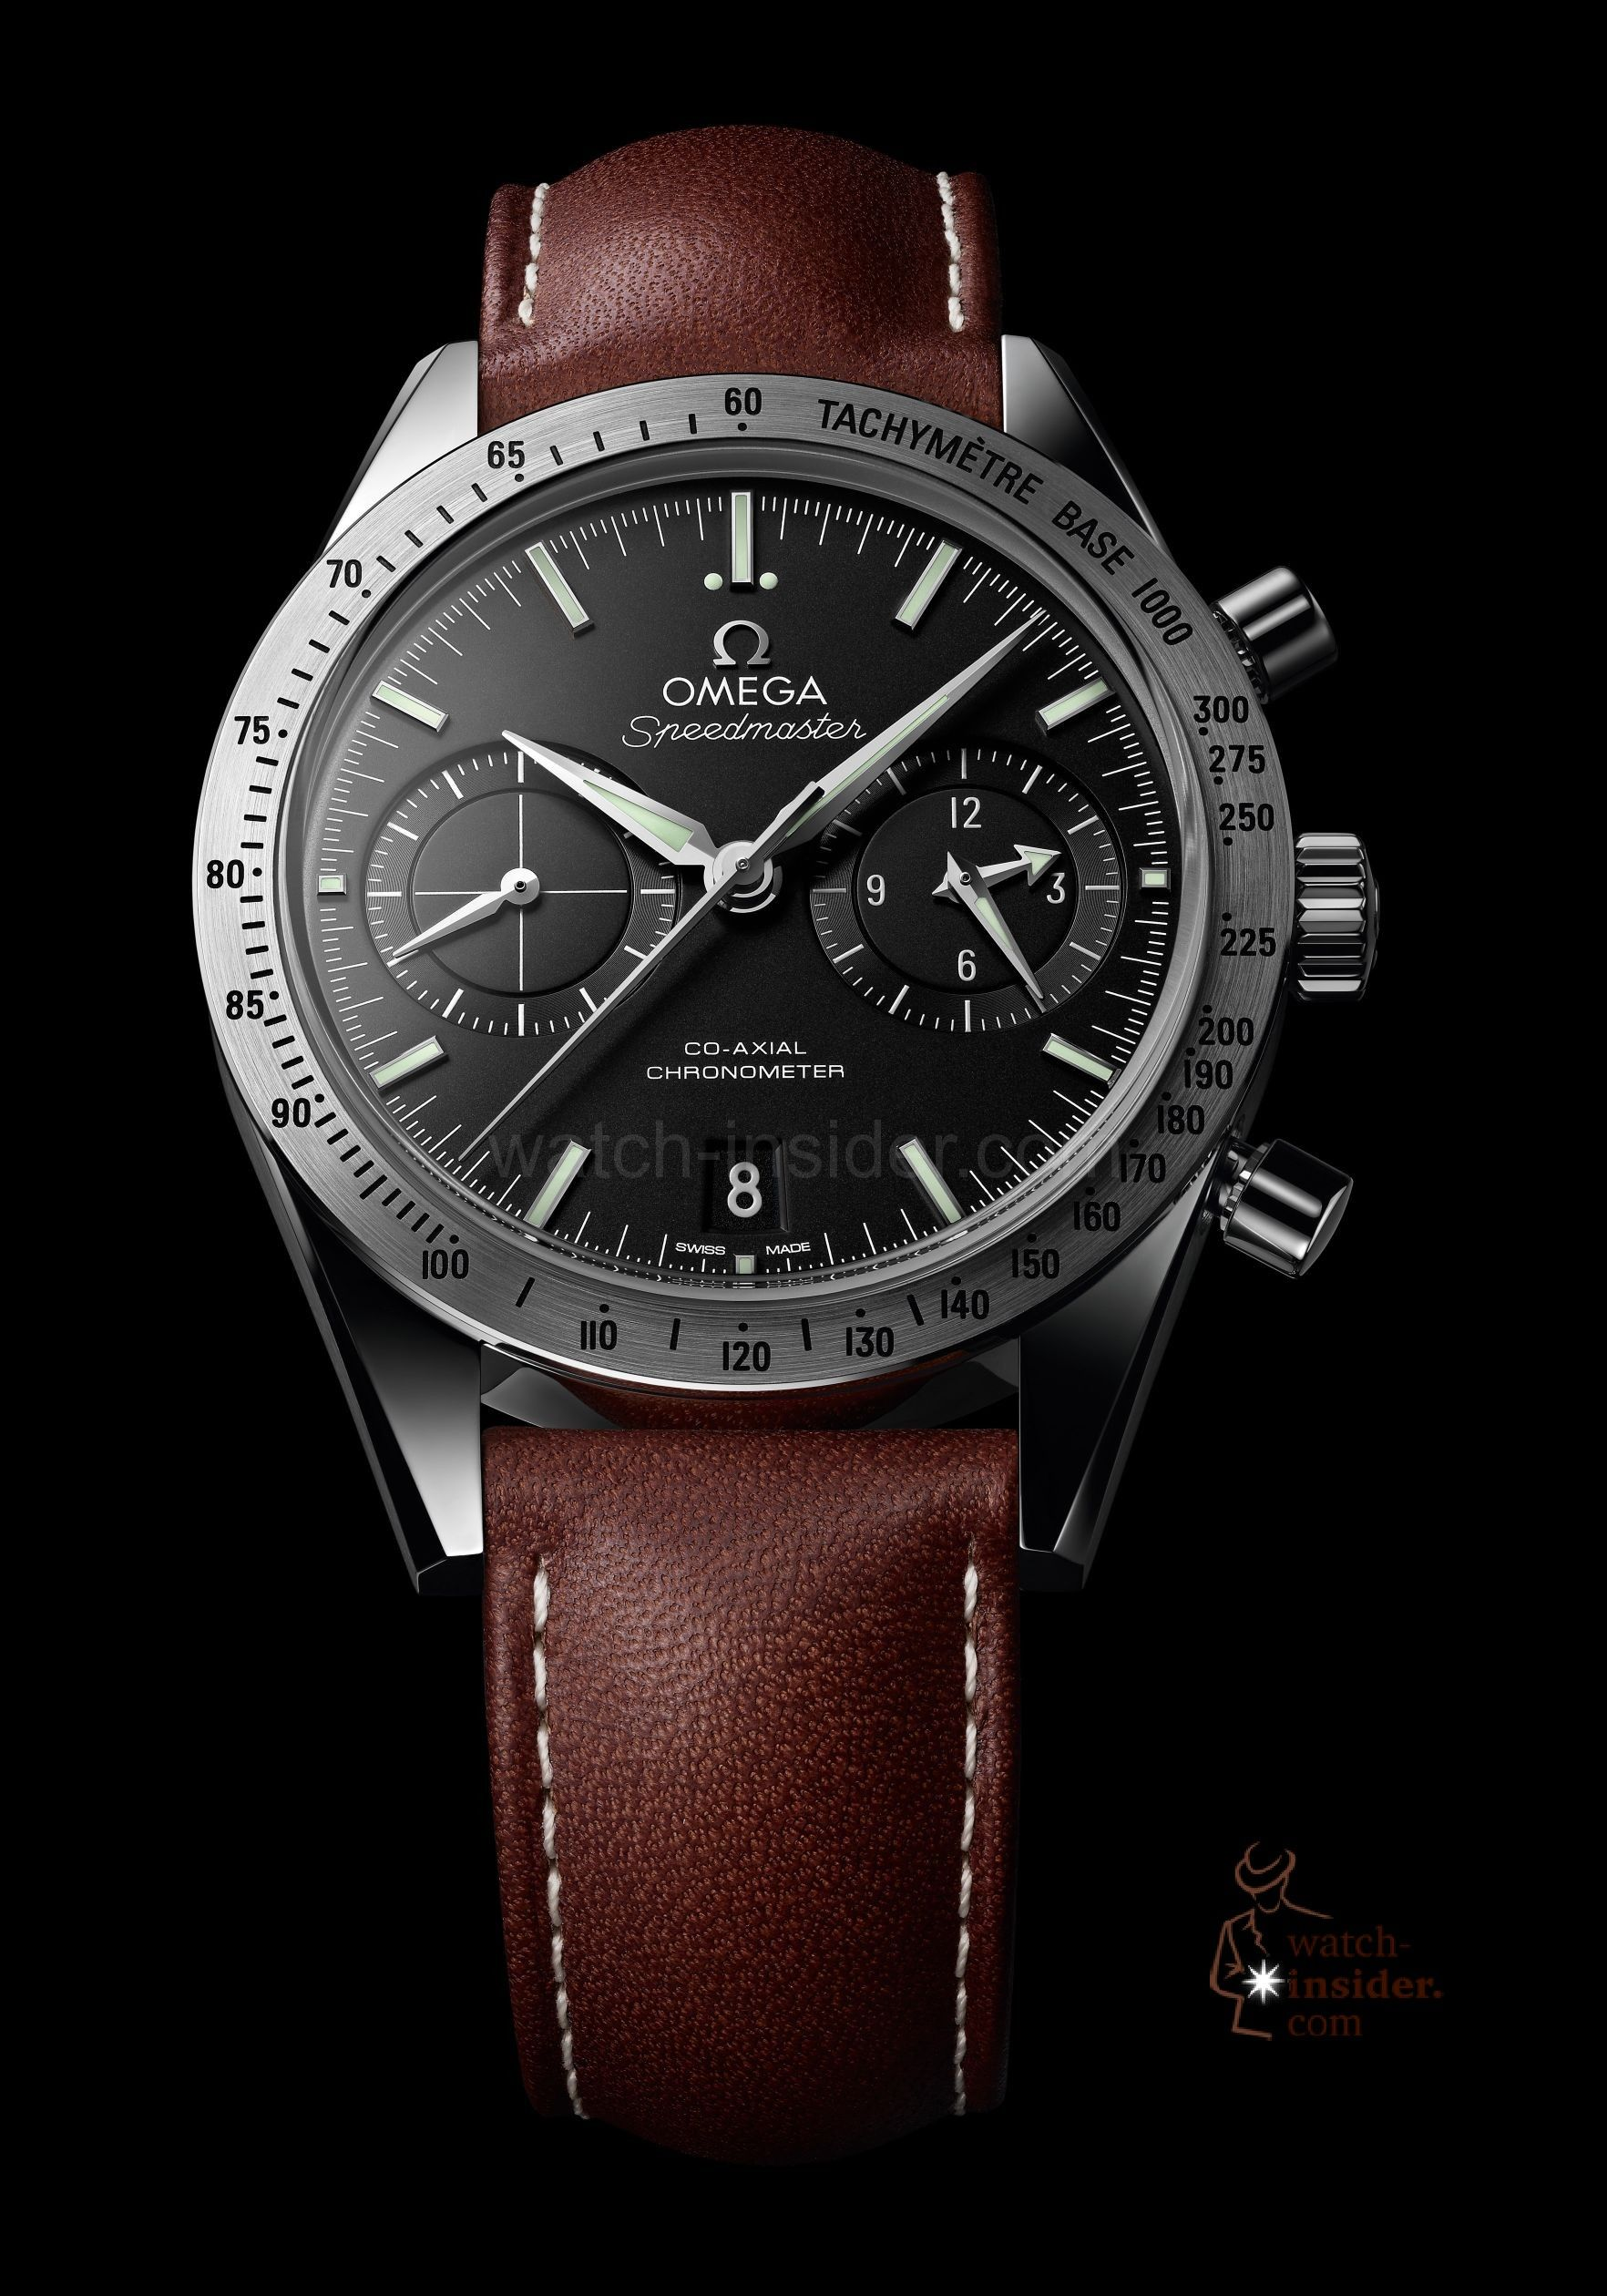 d094066e959 The  Omega  Speedmaster  57 Co-Axial  Chronograph  watch